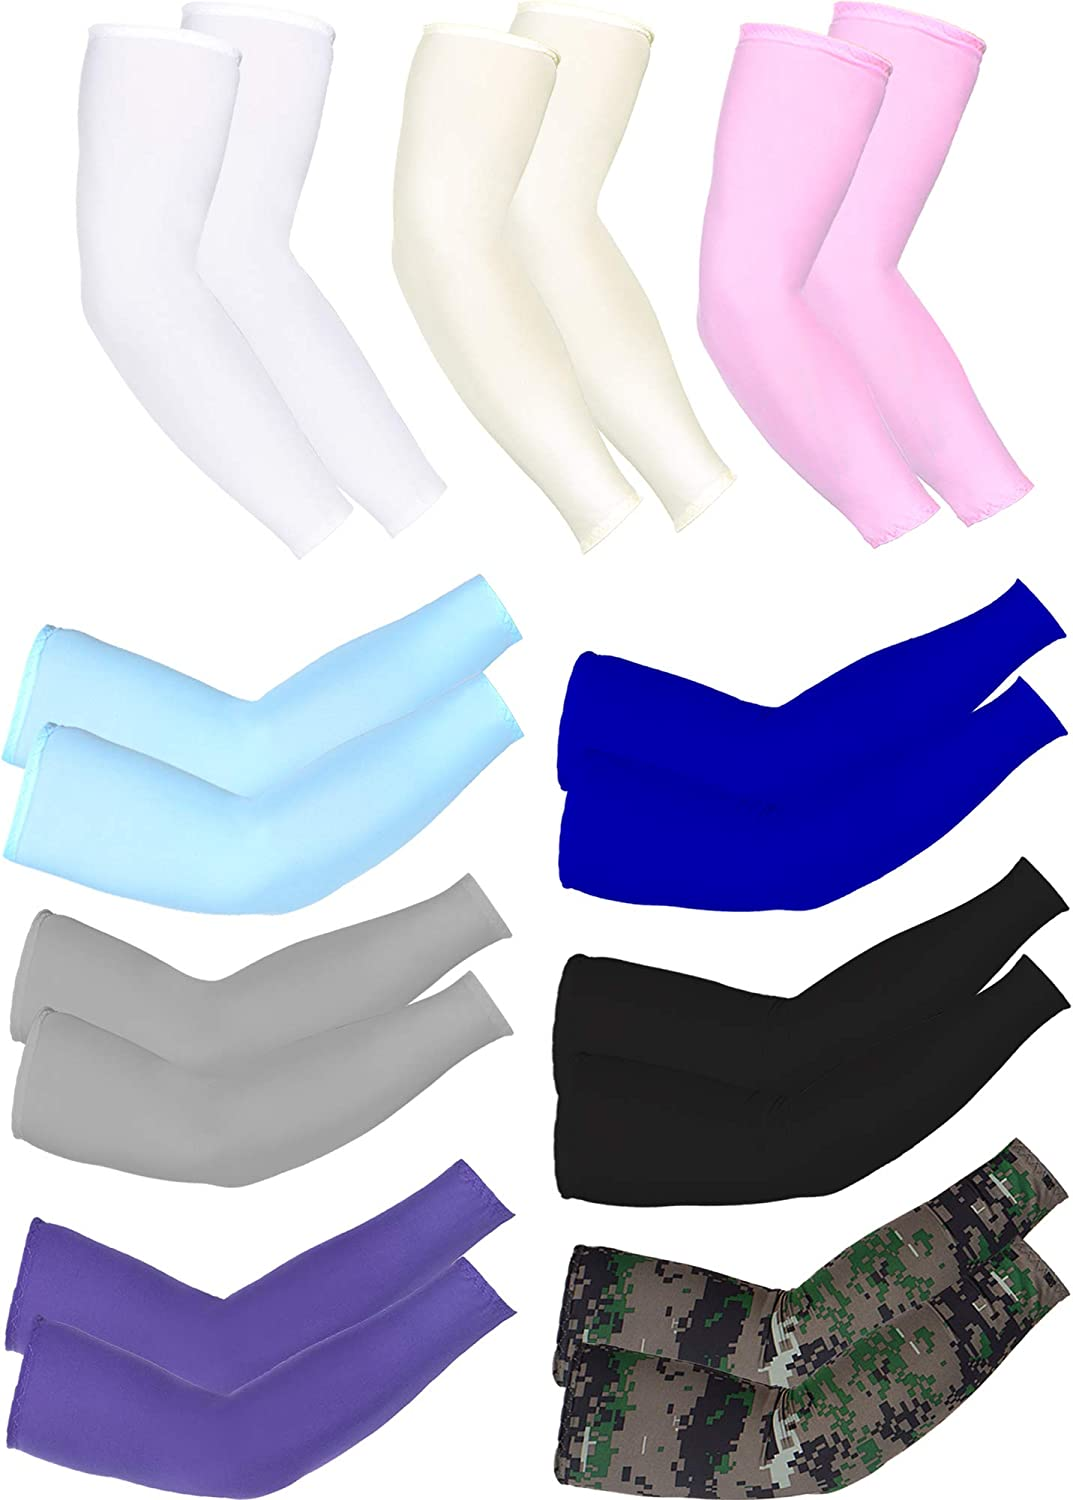 Mudder 9 Pairs Unisex UV Protection Sleeves Arm Cooling Sleeves Ice Silk Arm Sleeves Arm Cover Sleeves (White, Black, Gray, Sky Blue, Pink, Purple, Royal Blue, Camouflage, Yellow): Clothing